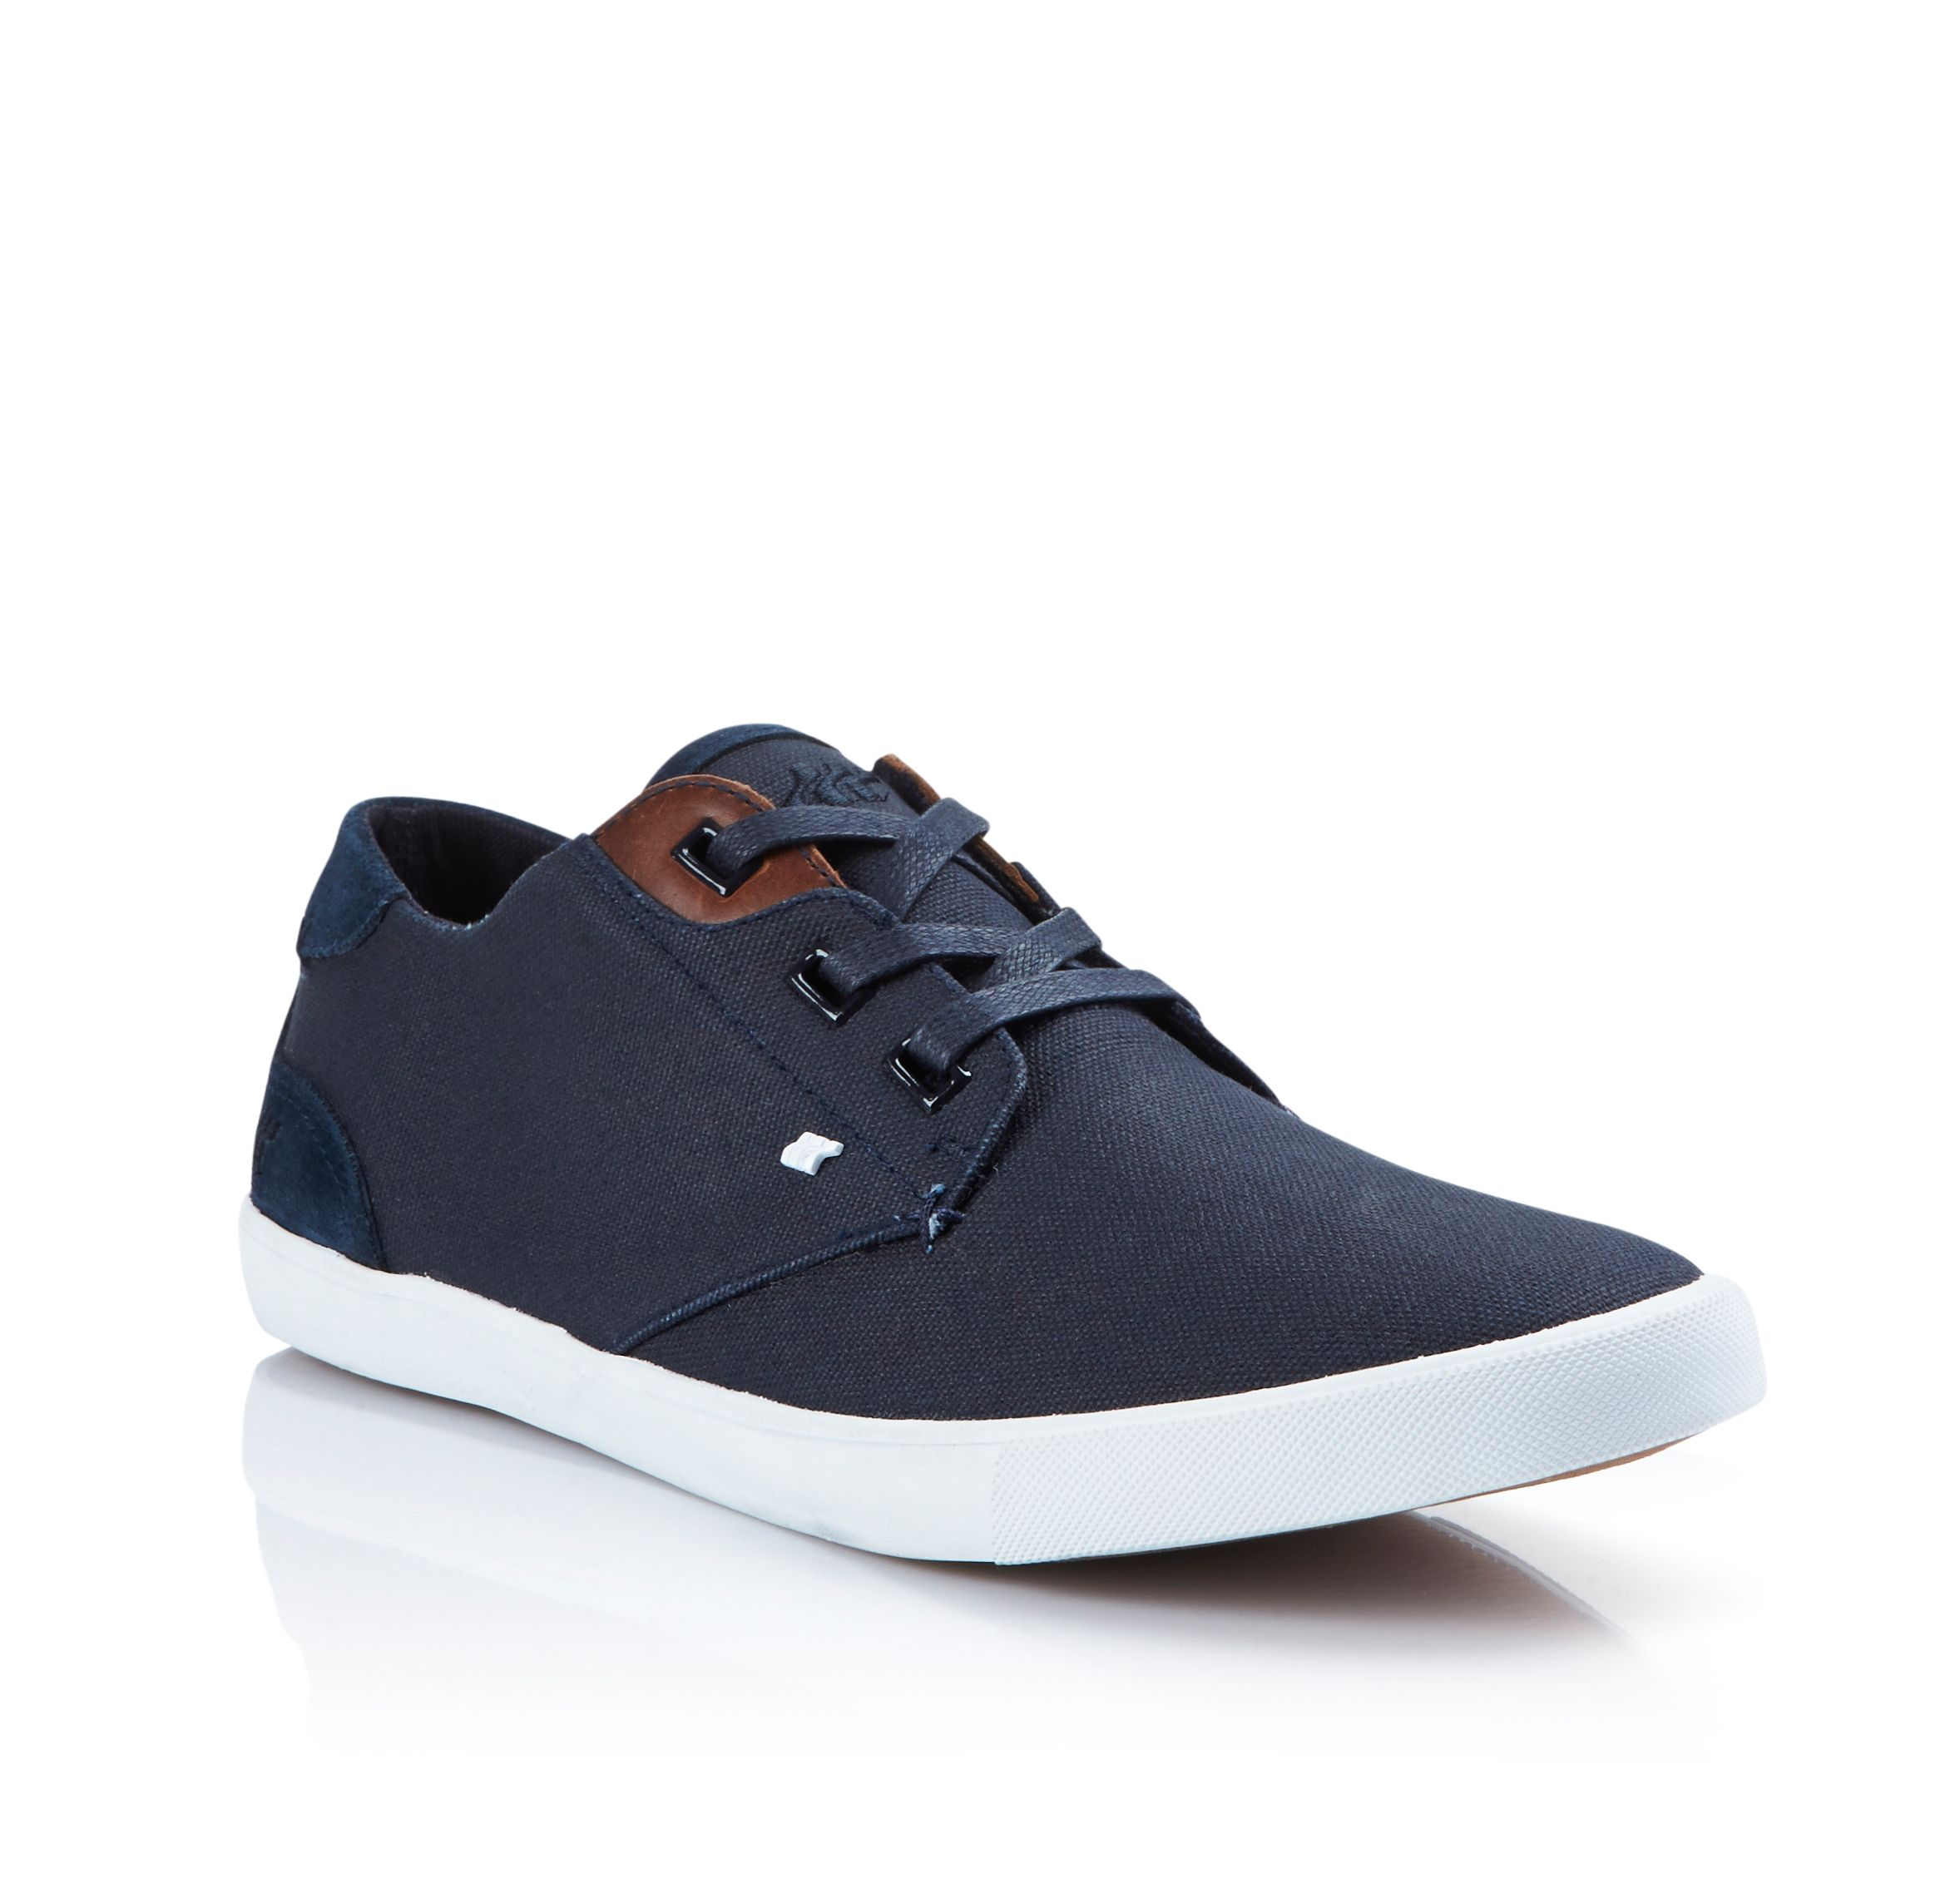 Stern lace up casual trainers